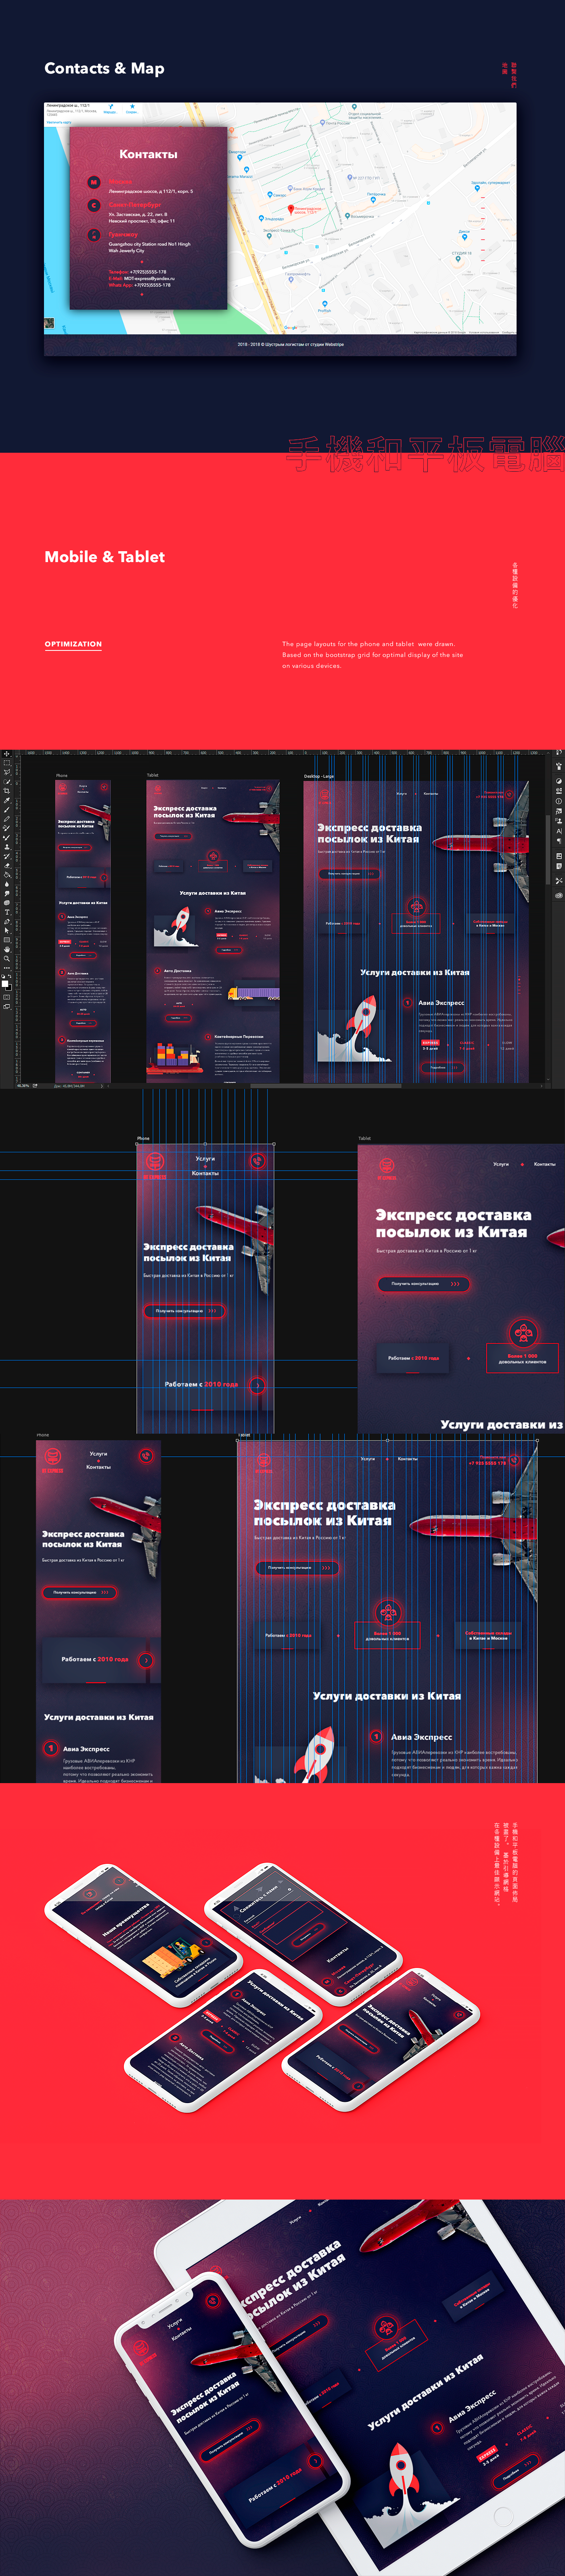 Website logistic china red Web Design  landing page development delivery